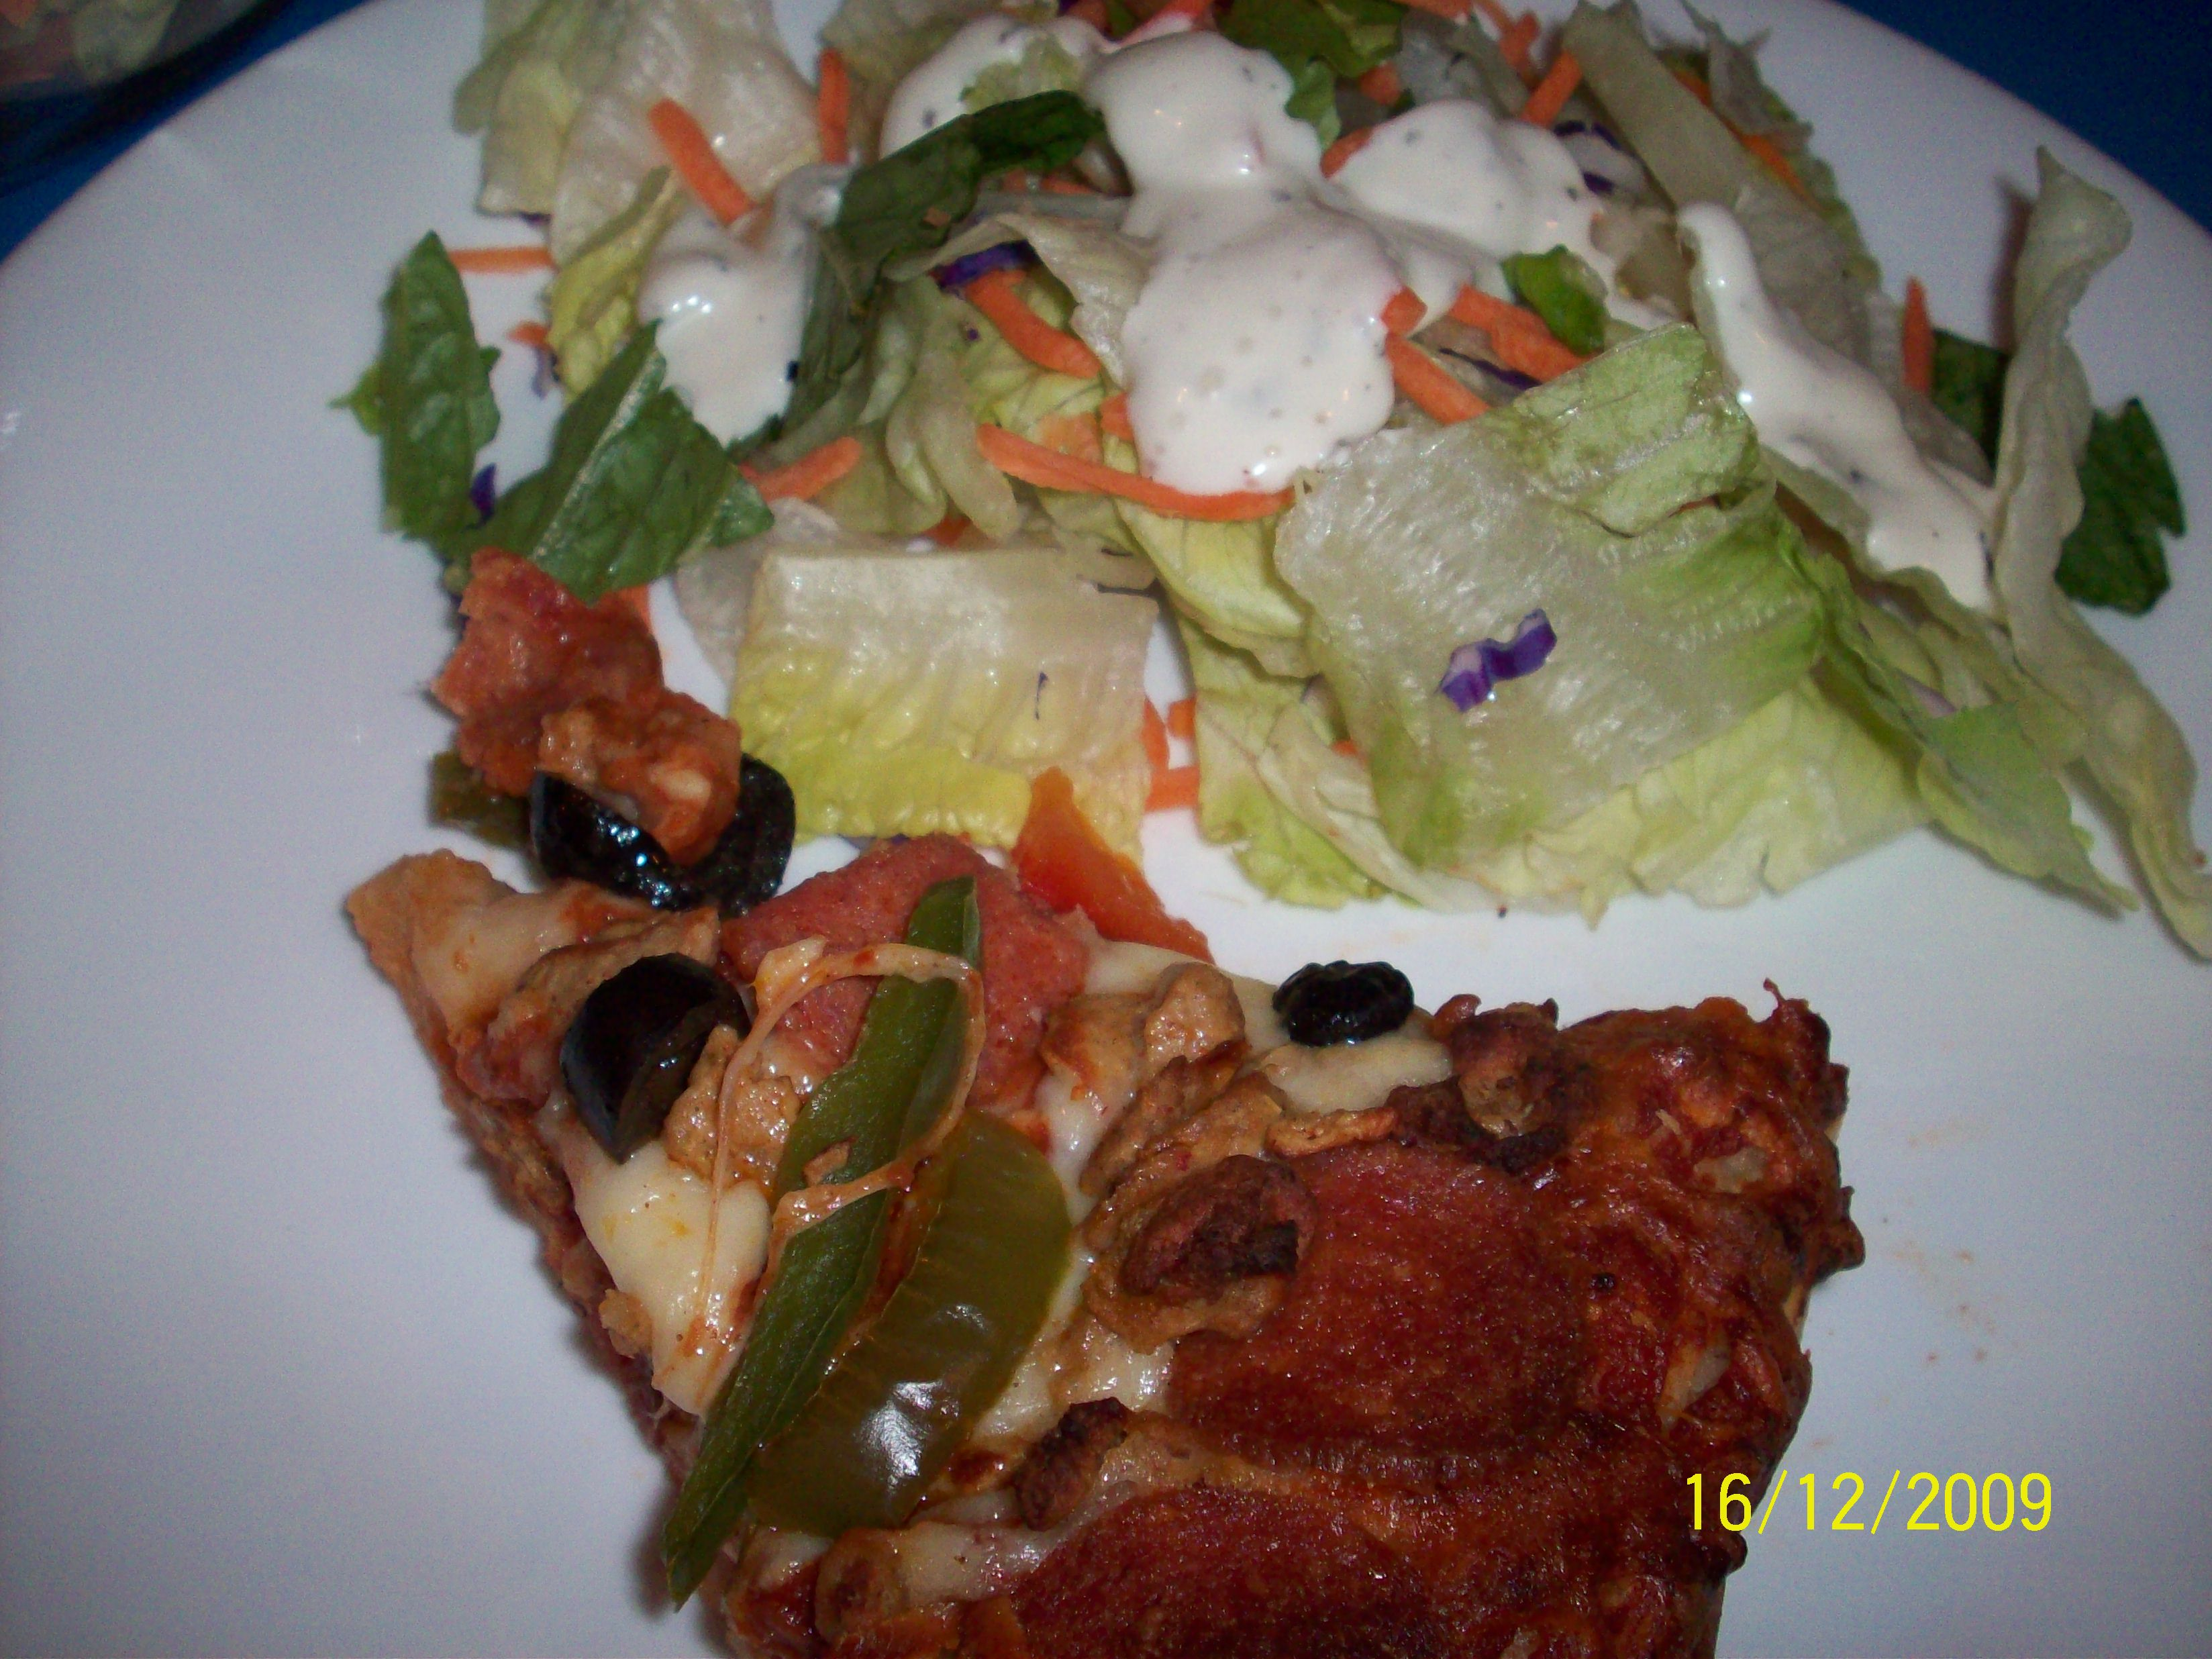 https://foodloader.net/cutie_2009-12-16_Pizza_and_Salad.jpg